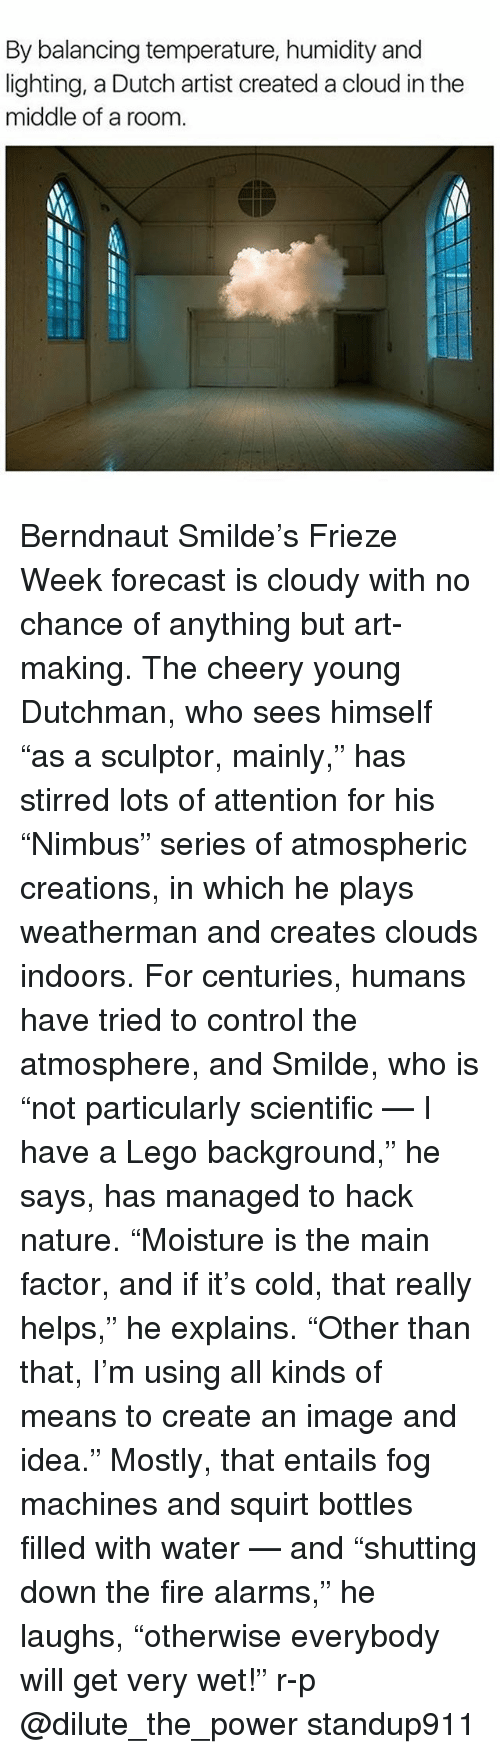 """Fire, Lego, and Memes: By balancing temperature, humidity and  lighting, a Dutch artist created a cloud inthe  middle of a room. Berndnaut Smilde's Frieze Week forecast is cloudy with no chance of anything but art-making. The cheery young Dutchman, who sees himself """"as a sculptor, mainly,"""" has stirred lots of attention for his """"Nimbus"""" series of atmospheric creations, in which he plays weatherman and creates clouds indoors. For centuries, humans have tried to control the atmosphere, and Smilde, who is """"not particularly scientific — I have a Lego background,"""" he says, has managed to hack nature. """"Moisture is the main factor, and if it's cold, that really helps,"""" he explains. """"Other than that, I'm using all kinds of means to create an image and idea."""" Mostly, that entails fog machines and squirt bottles filled with water — and """"shutting down the fire alarms,"""" he laughs, """"otherwise everybody will get very wet!"""" r-p @dilute_the_power standup911"""